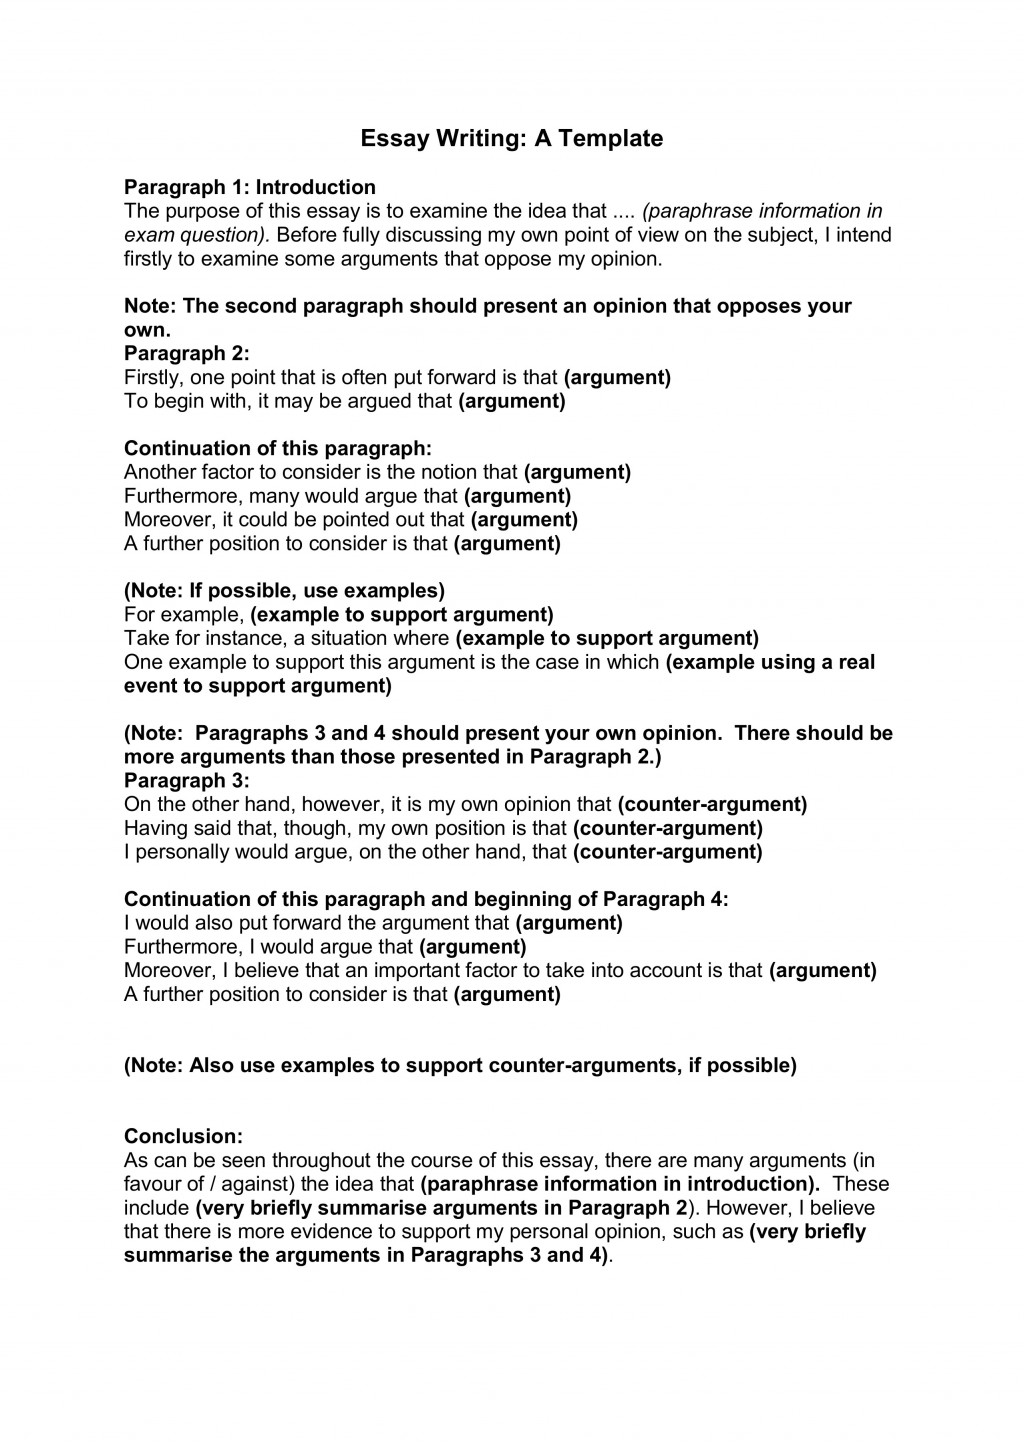 025 Essay Writing Template For Part How Many Sentences Are In Best A Much Make Paragraph An 250 Word Large